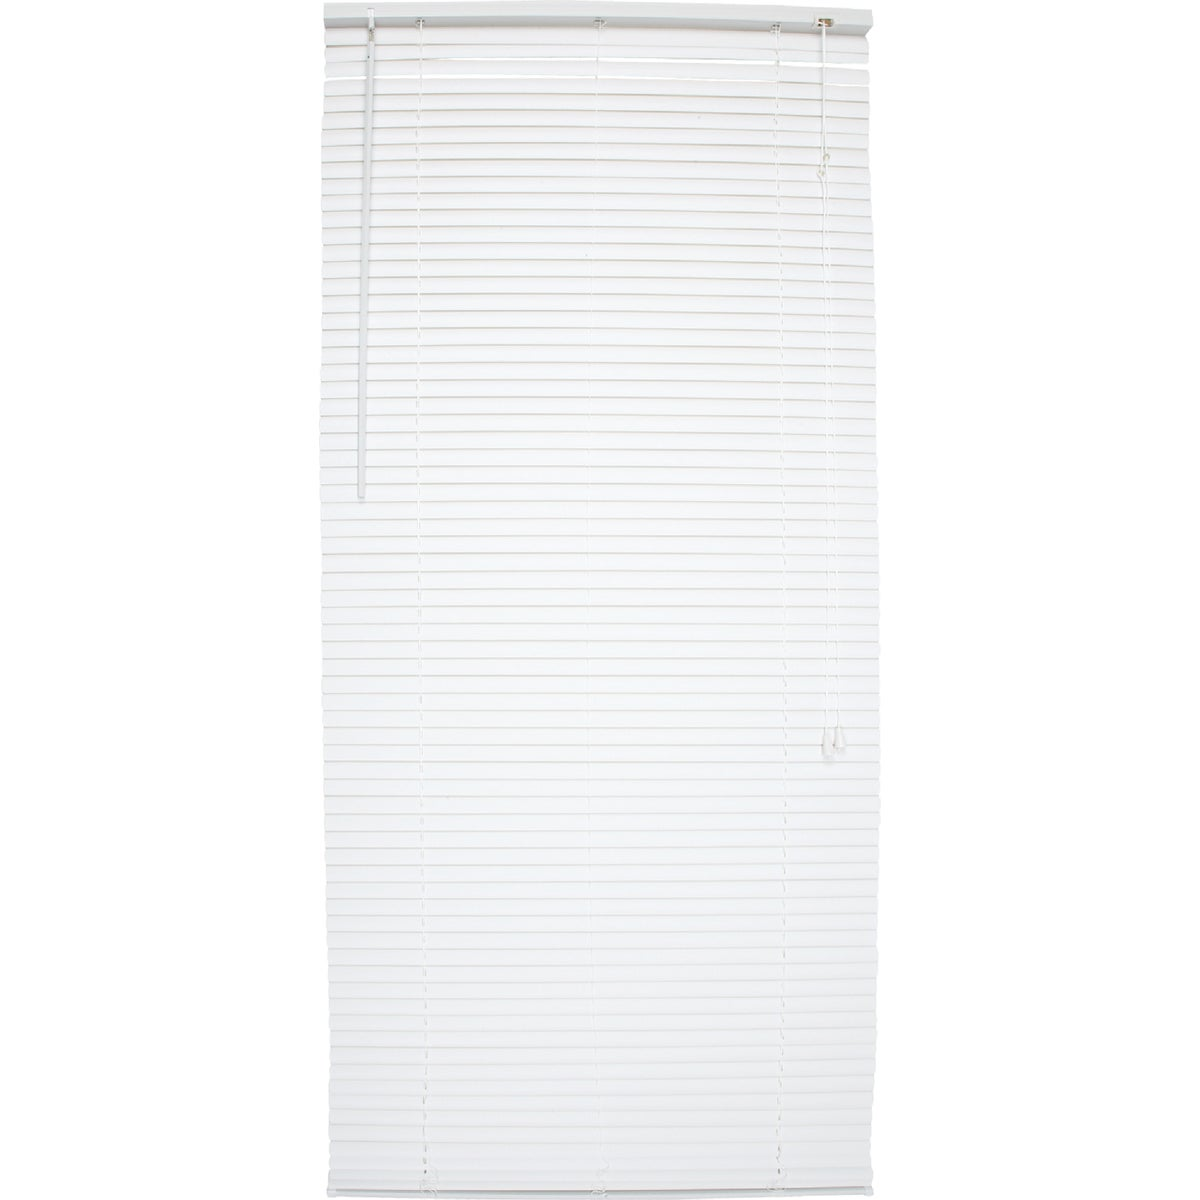 25X72 WHITE MINI BLIND - 614927 by Lotus Wind Incom